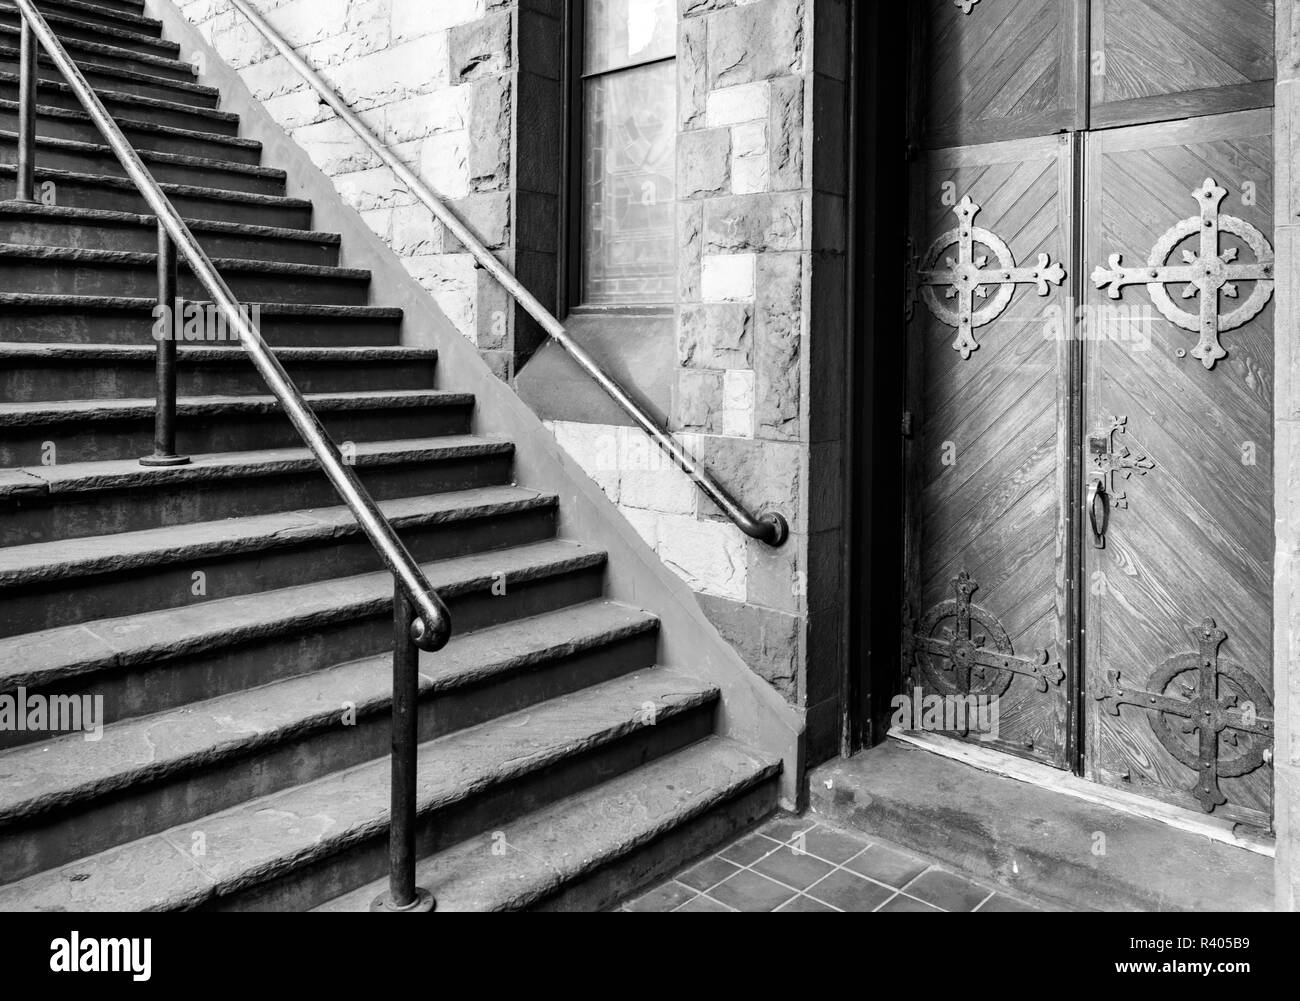 Boston, Massachusetts, USA. Trinity Church stairway detail. - Stock Image